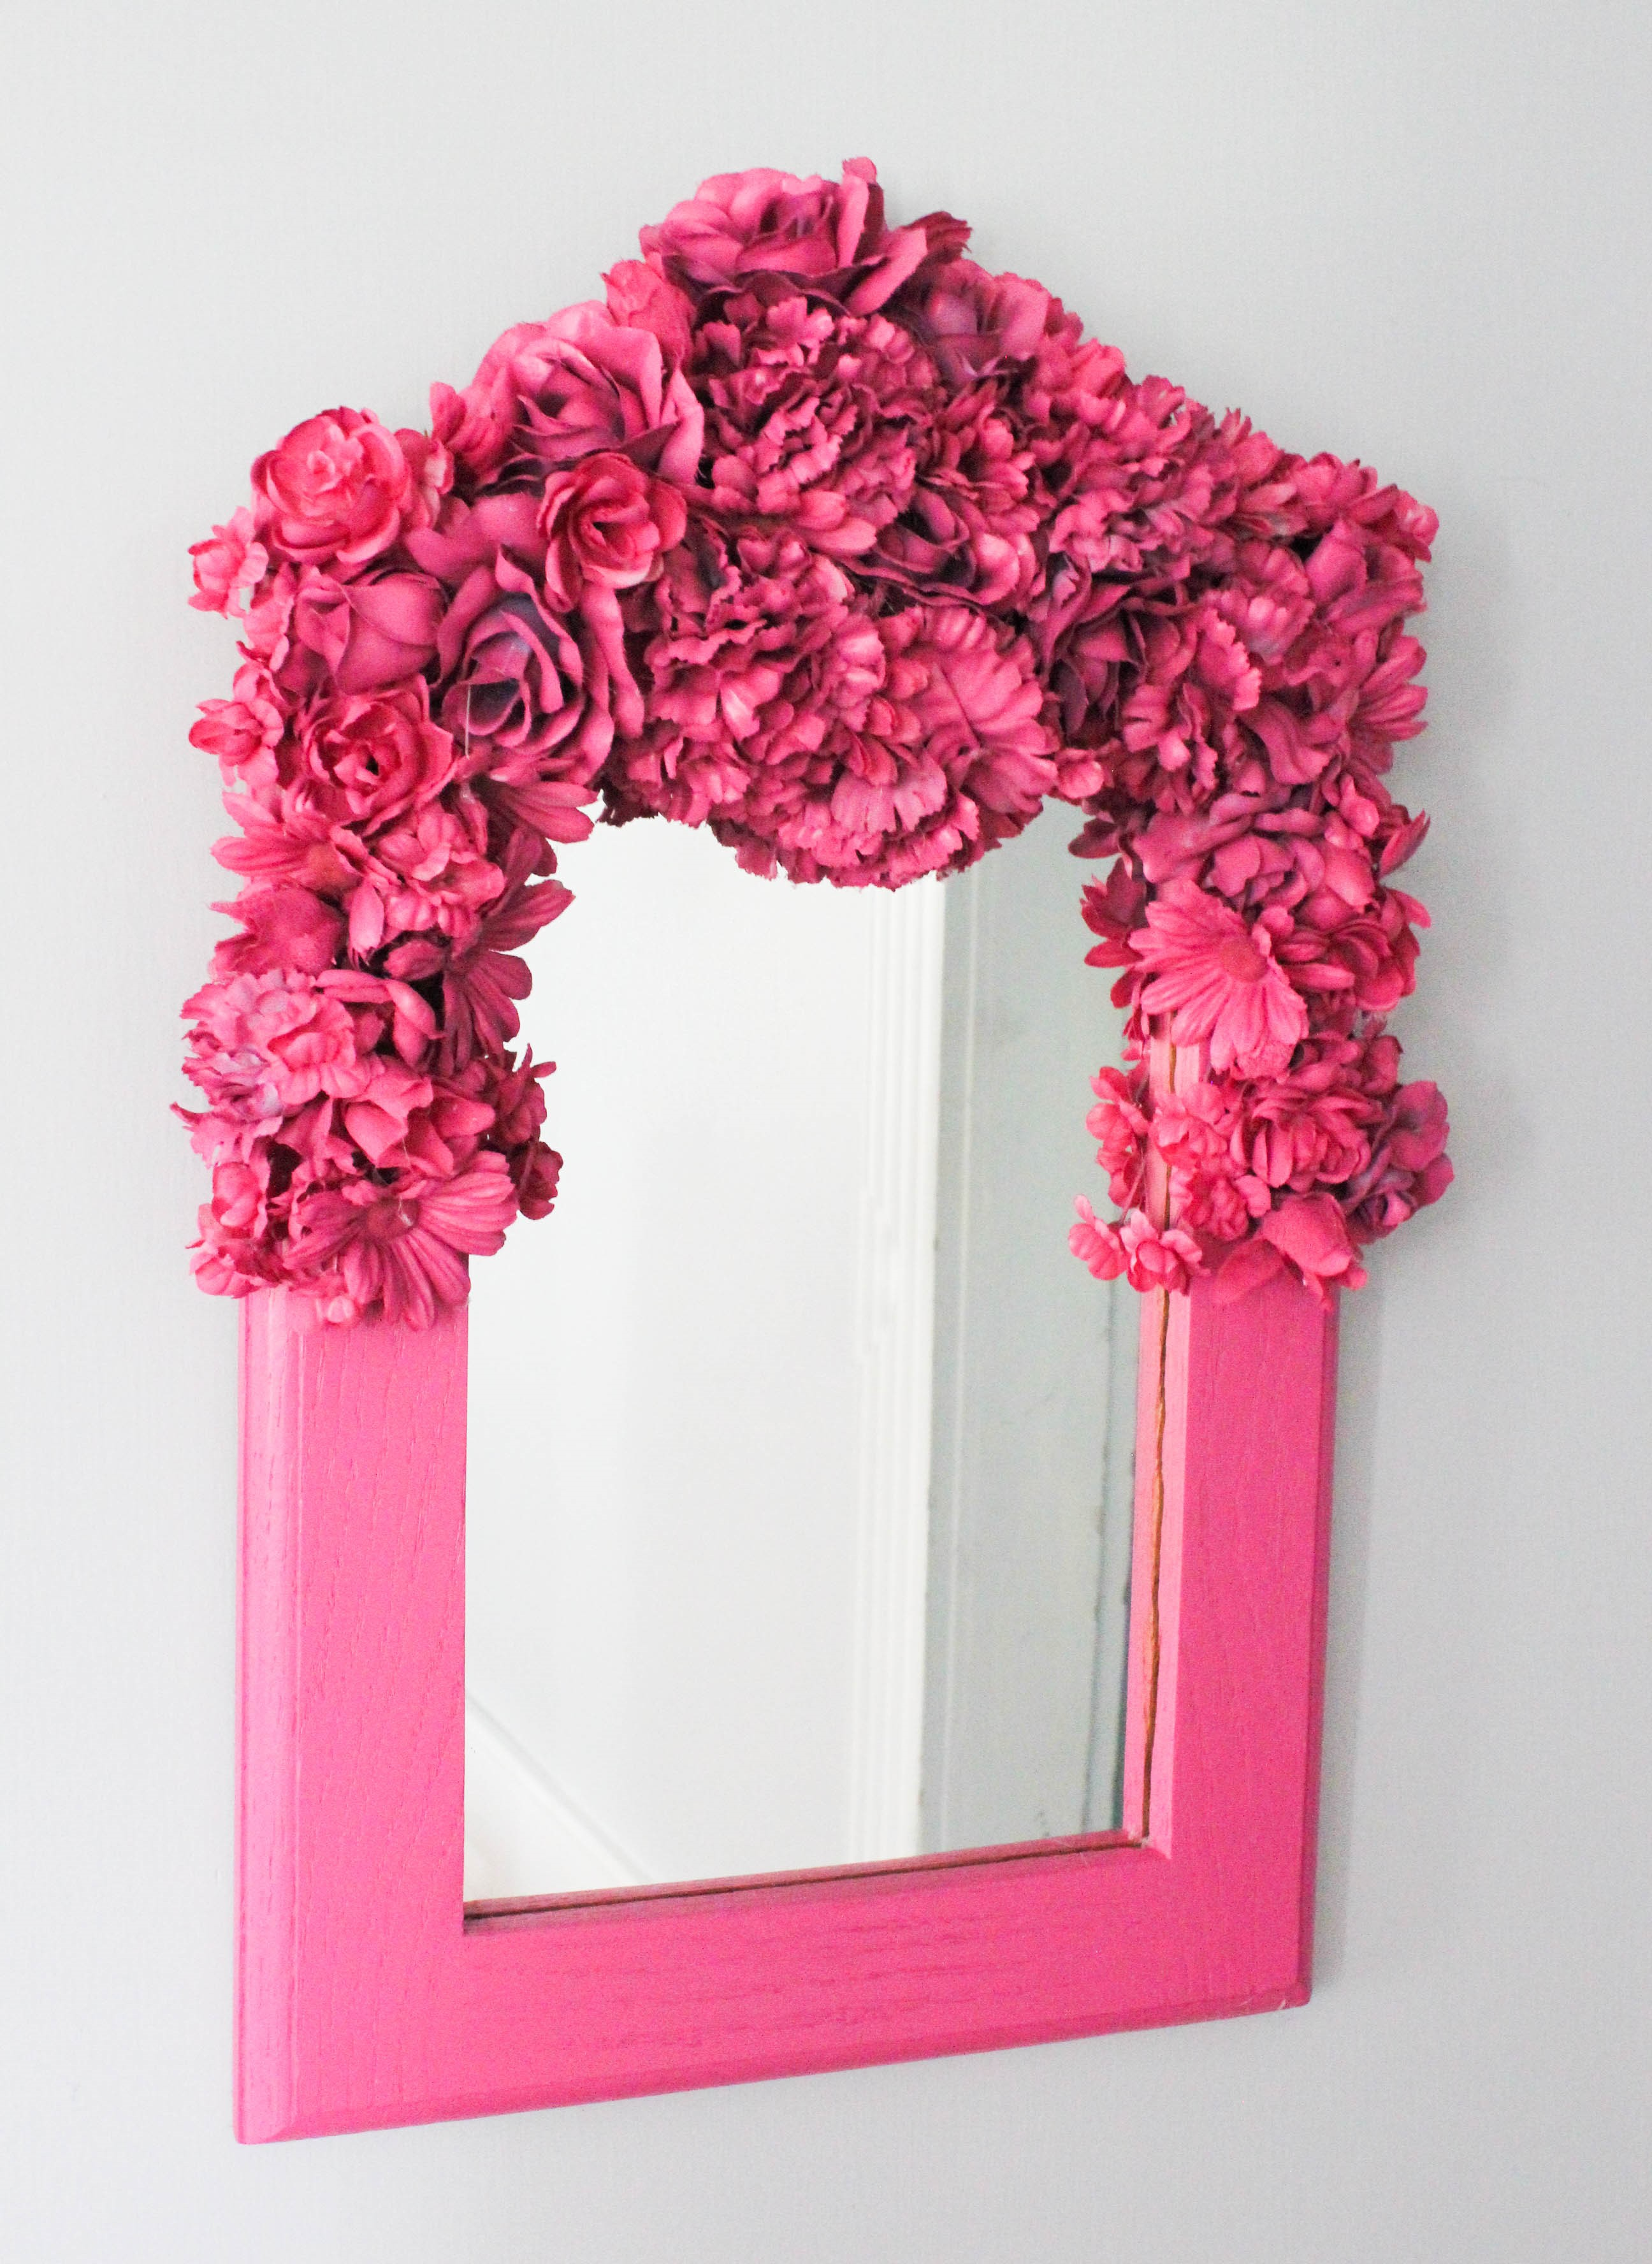 Transform a plain mirror with flowers and spray paint wow goodwill 1 mirror with silk flowers spray paint mightylinksfo